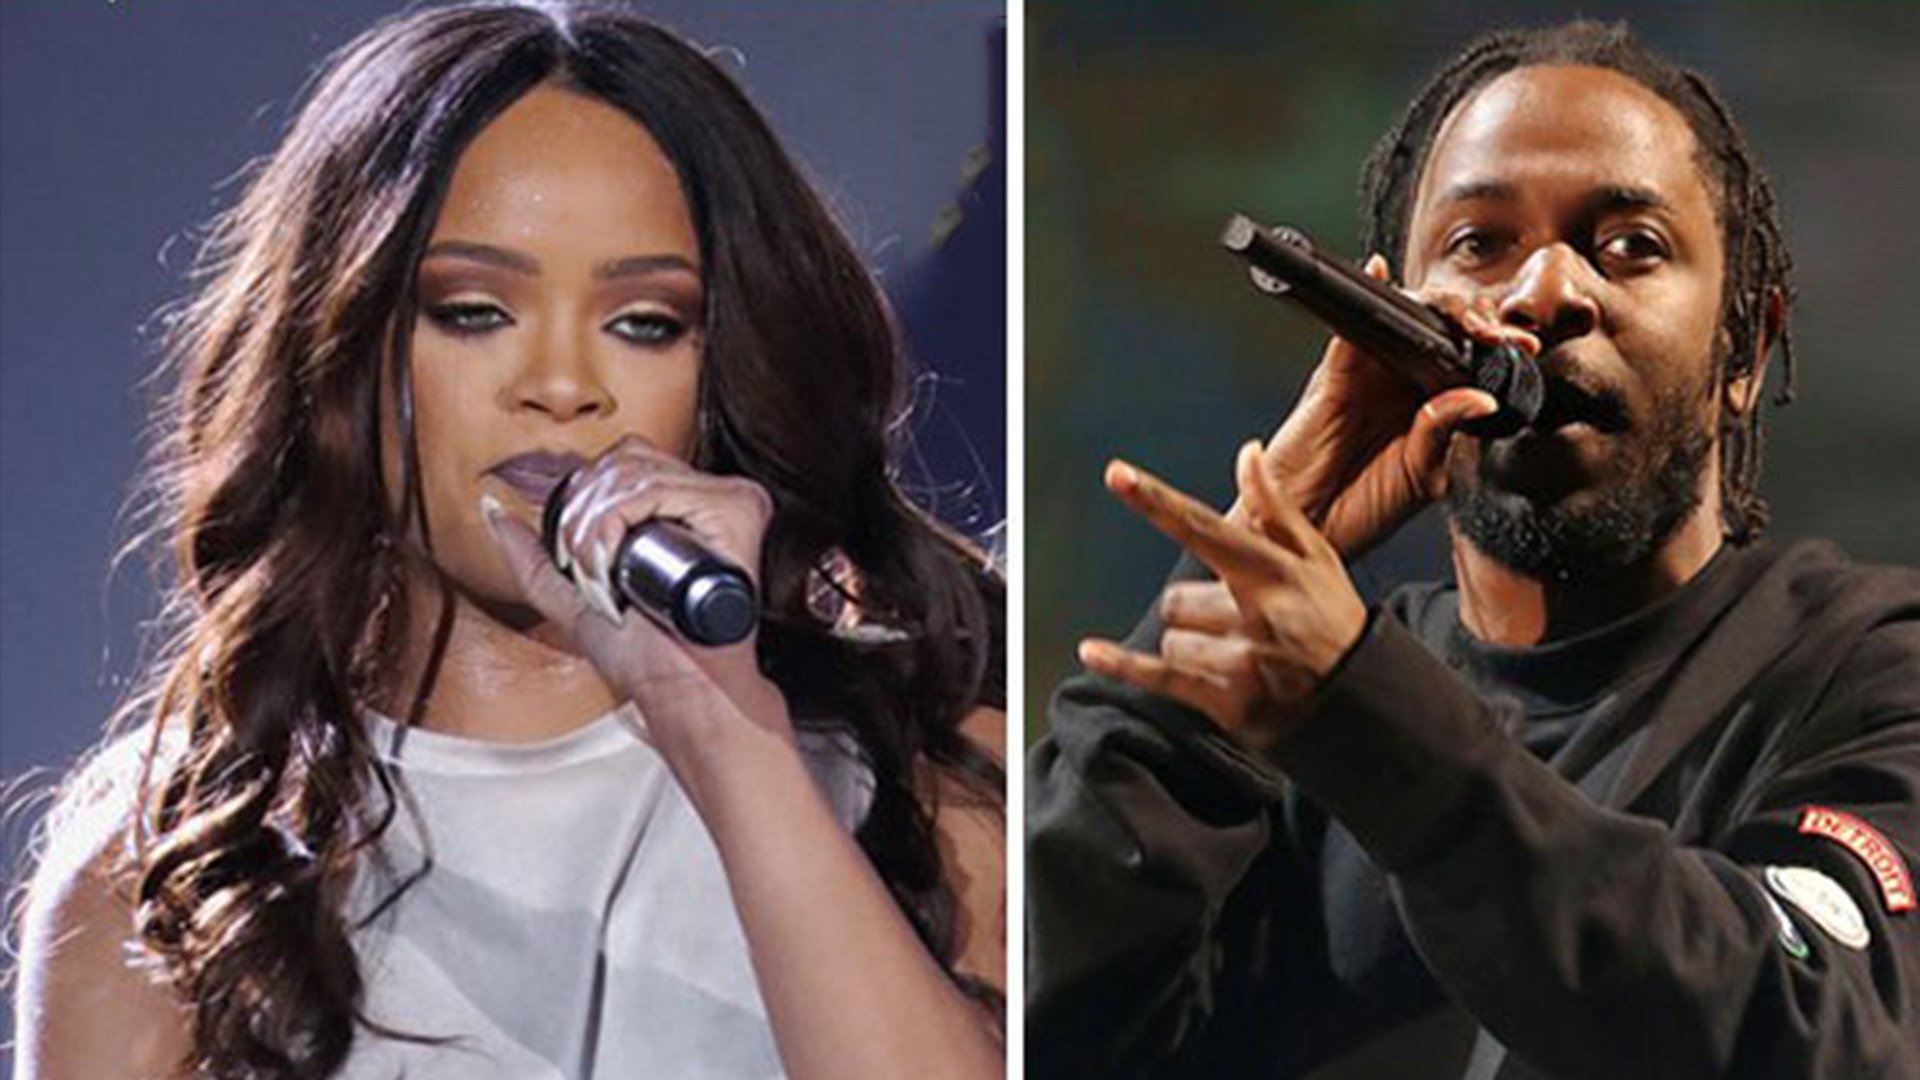 Rihanna and Kendrick Lamar Get Flirty On New Track 'Loyalty'